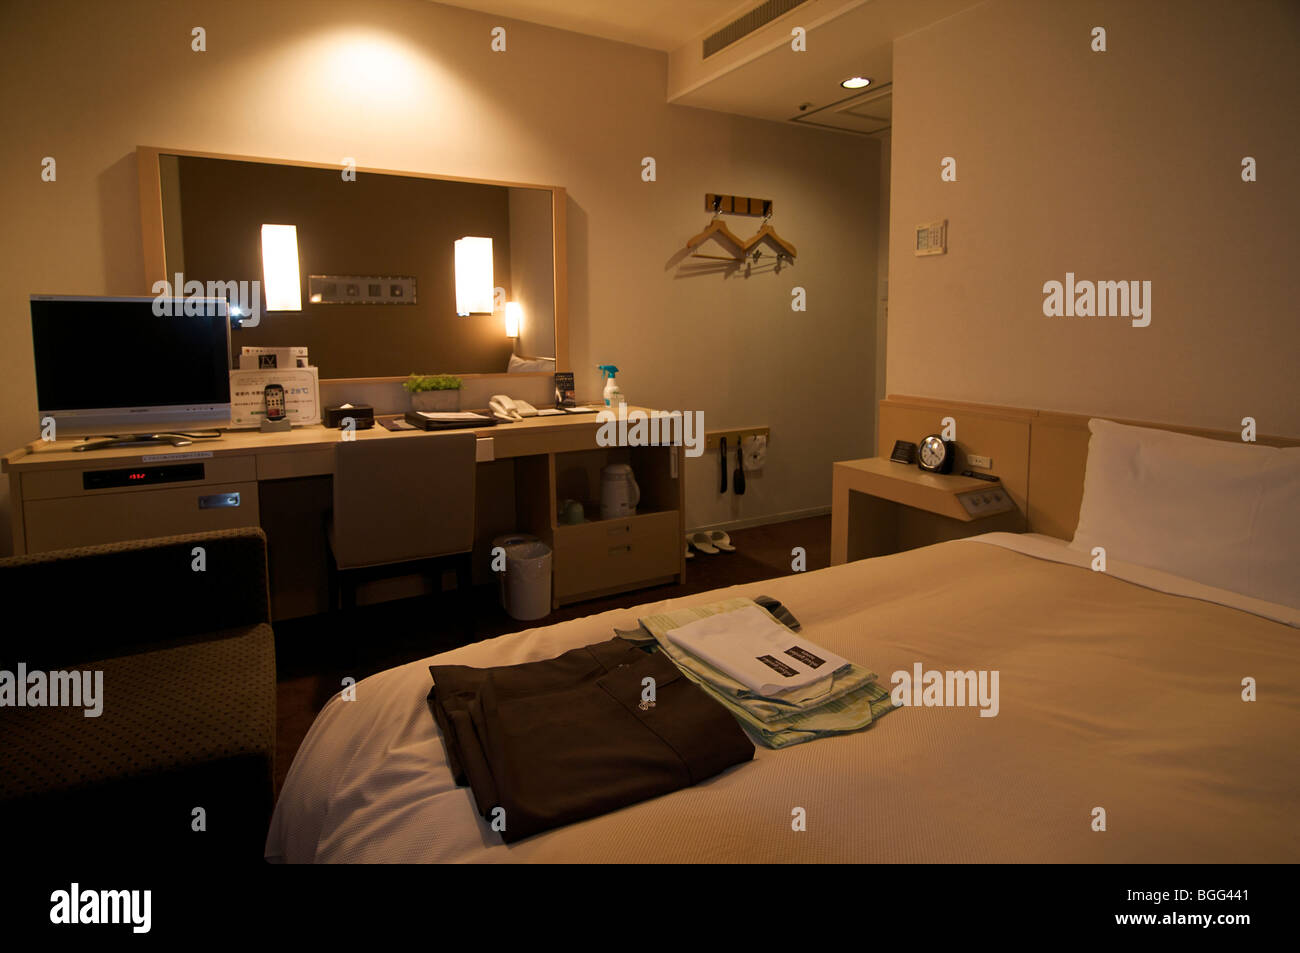 Guests bedroom in the Mitsui Garden Hotel, Kyoto, Japan - Stock Image